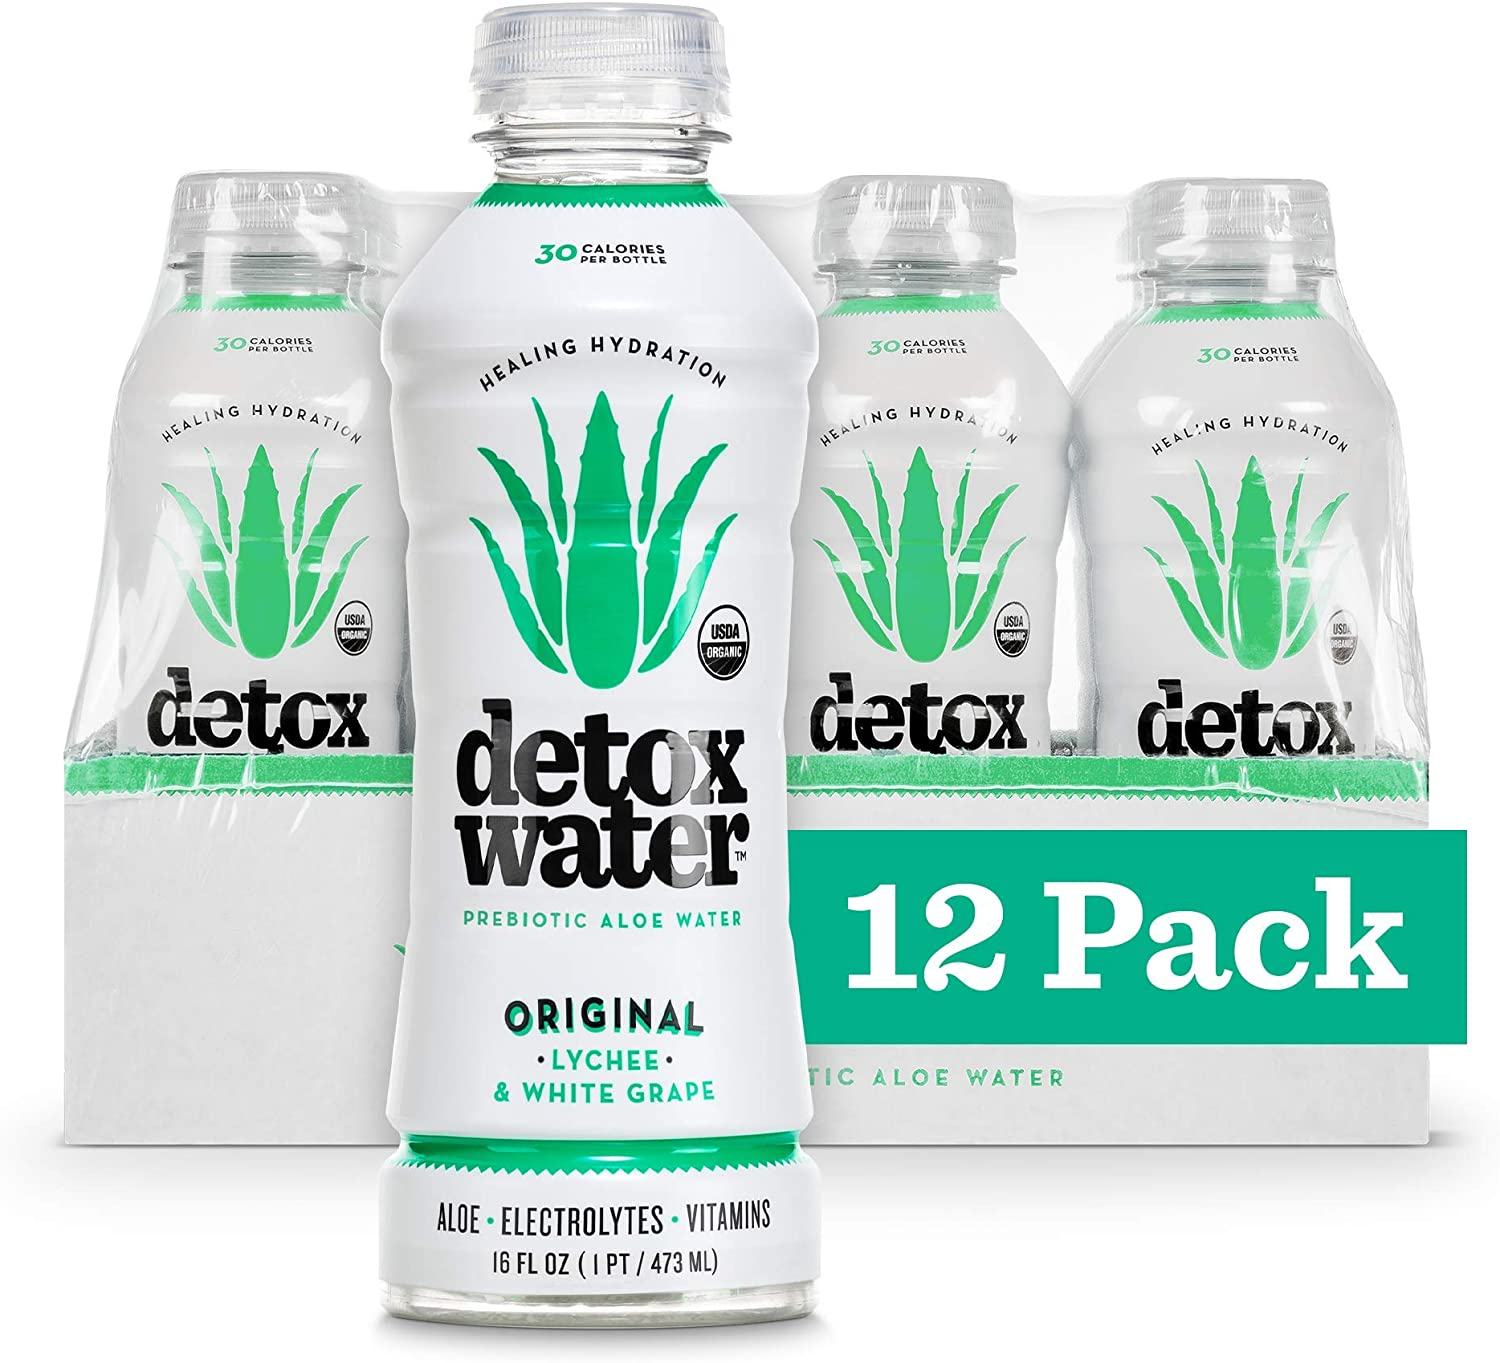 Detoxwater Organic Aloe Vera Infused Prebiotic Water - Original | Contains Highest Quality ACTIValoe® with Electrolytes, Vitamins, Antioxidants | 30 Calories (Lychee & White Grape, 12 Pack)